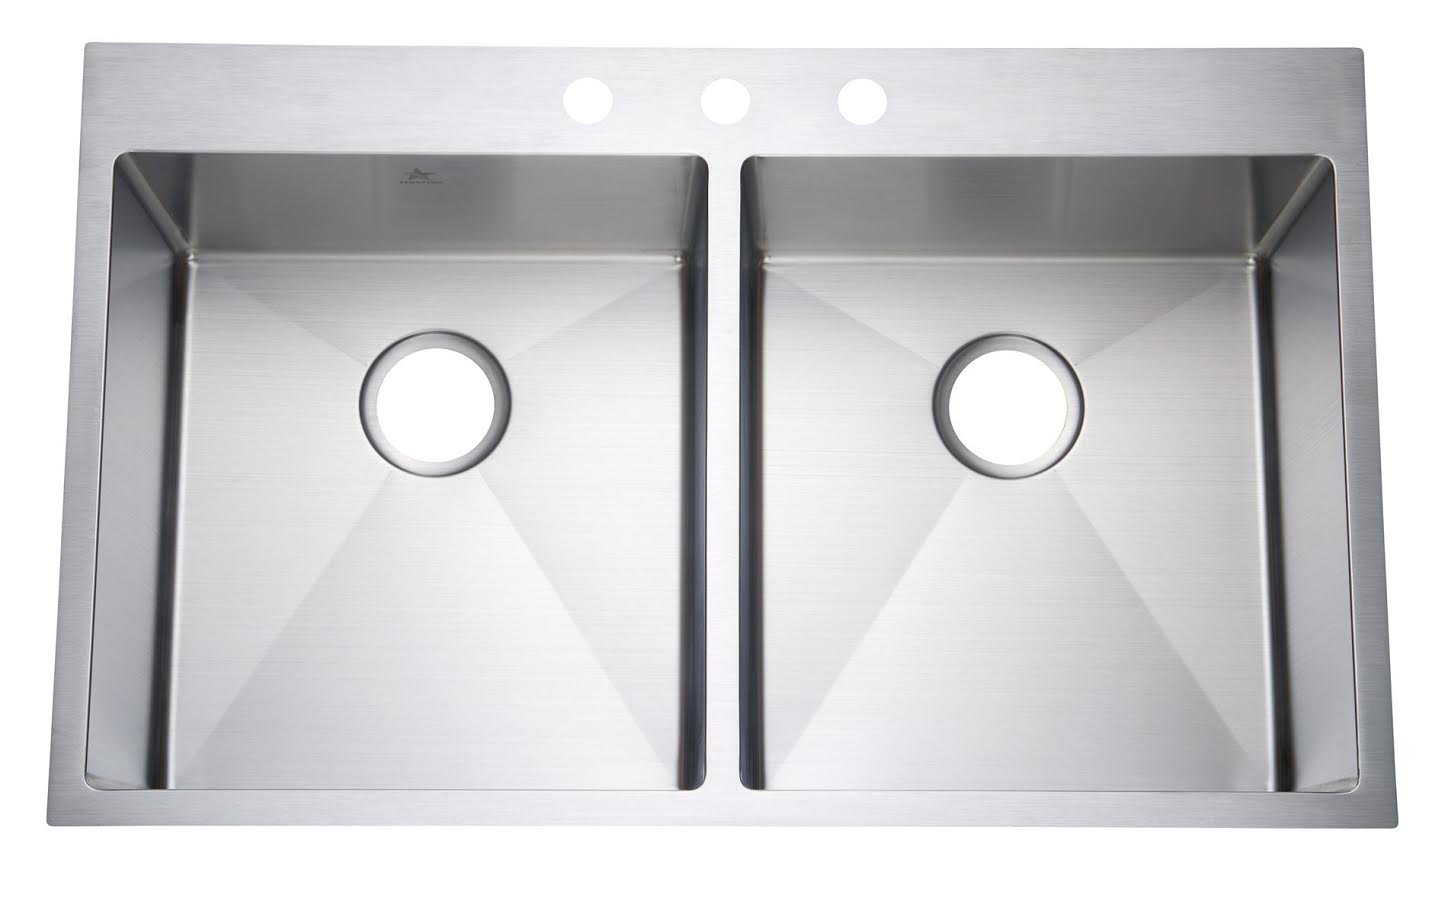 Starstar 36 Inch Top-mount Drop In Stainless Steel Double Bowl Kitchen Sink 16 Gauge